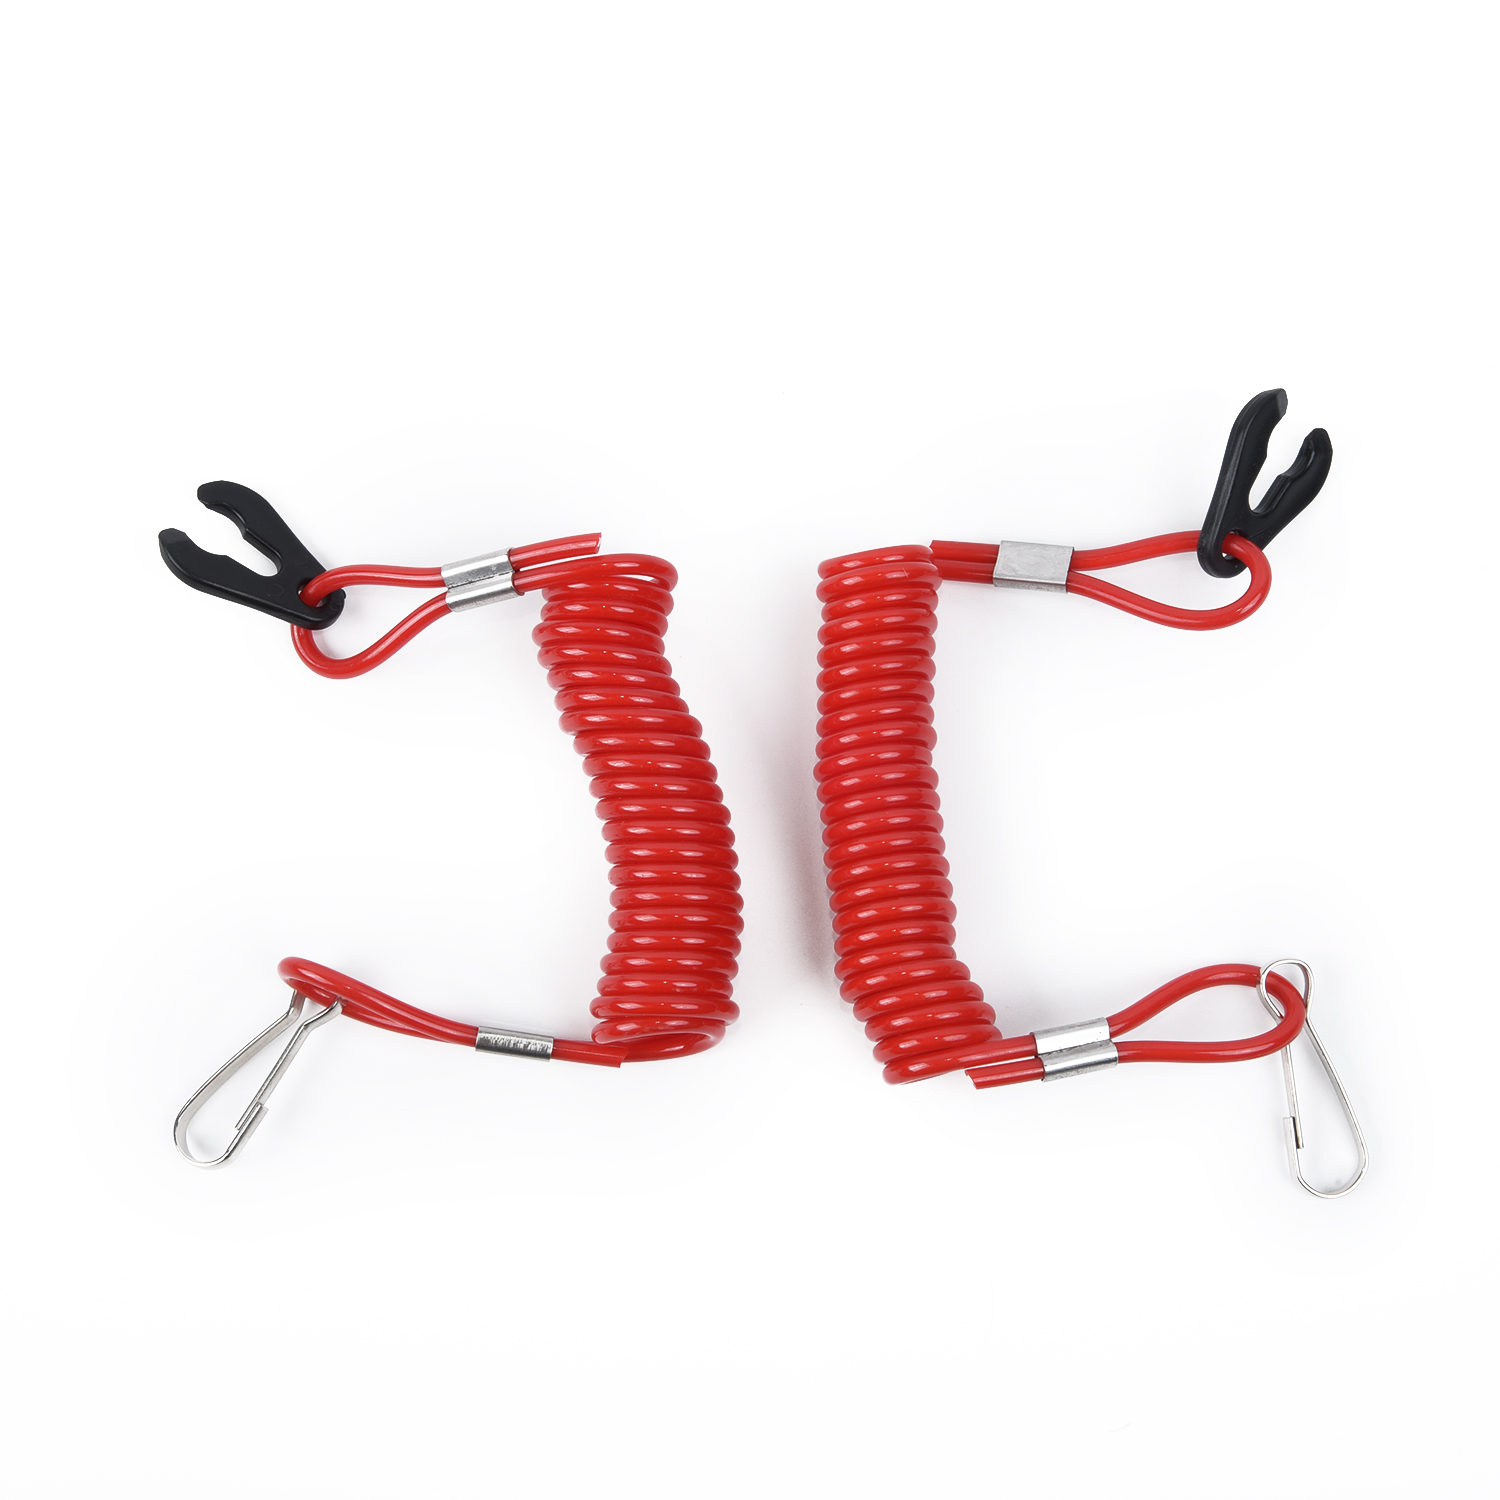 2x Boat Emergency Stop Engine Kill Switch Safety Ropes Fit For Mercury Durable